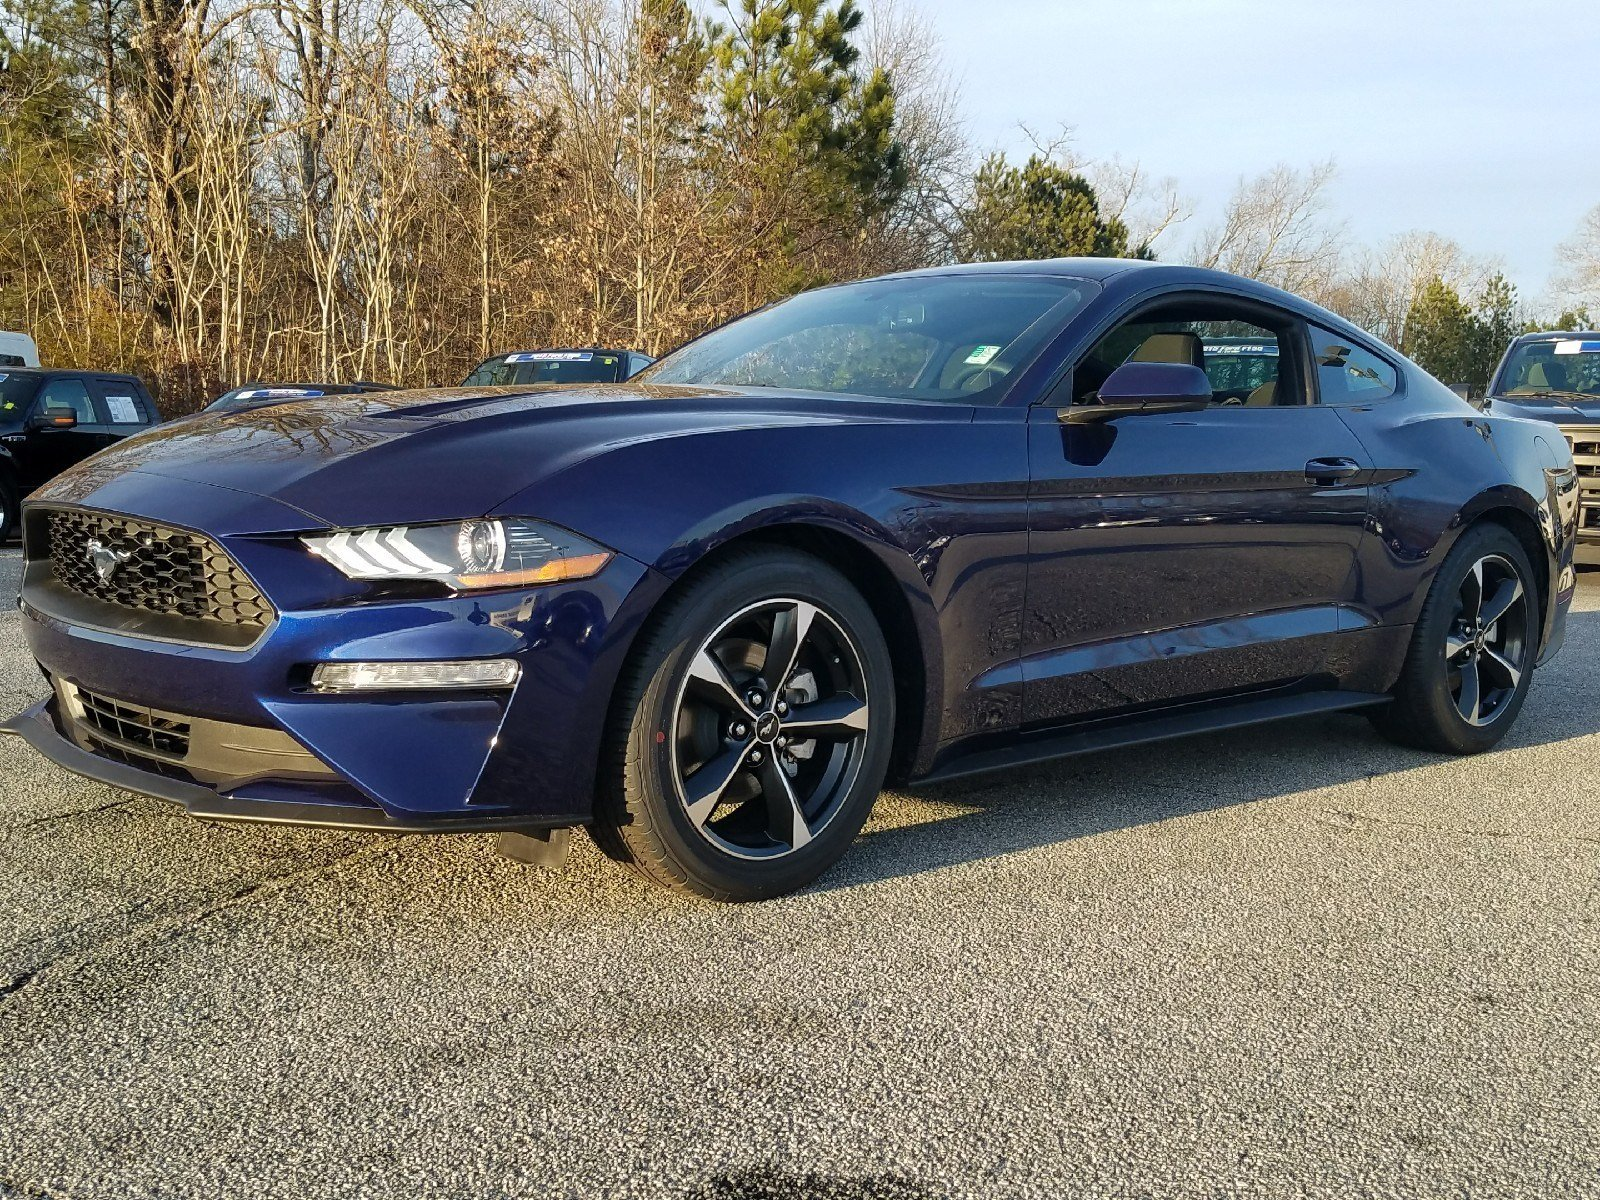 2018 Ford Mustang Ecoboost 2 Door RWD Automatic 2.3L EcoBoost Engine